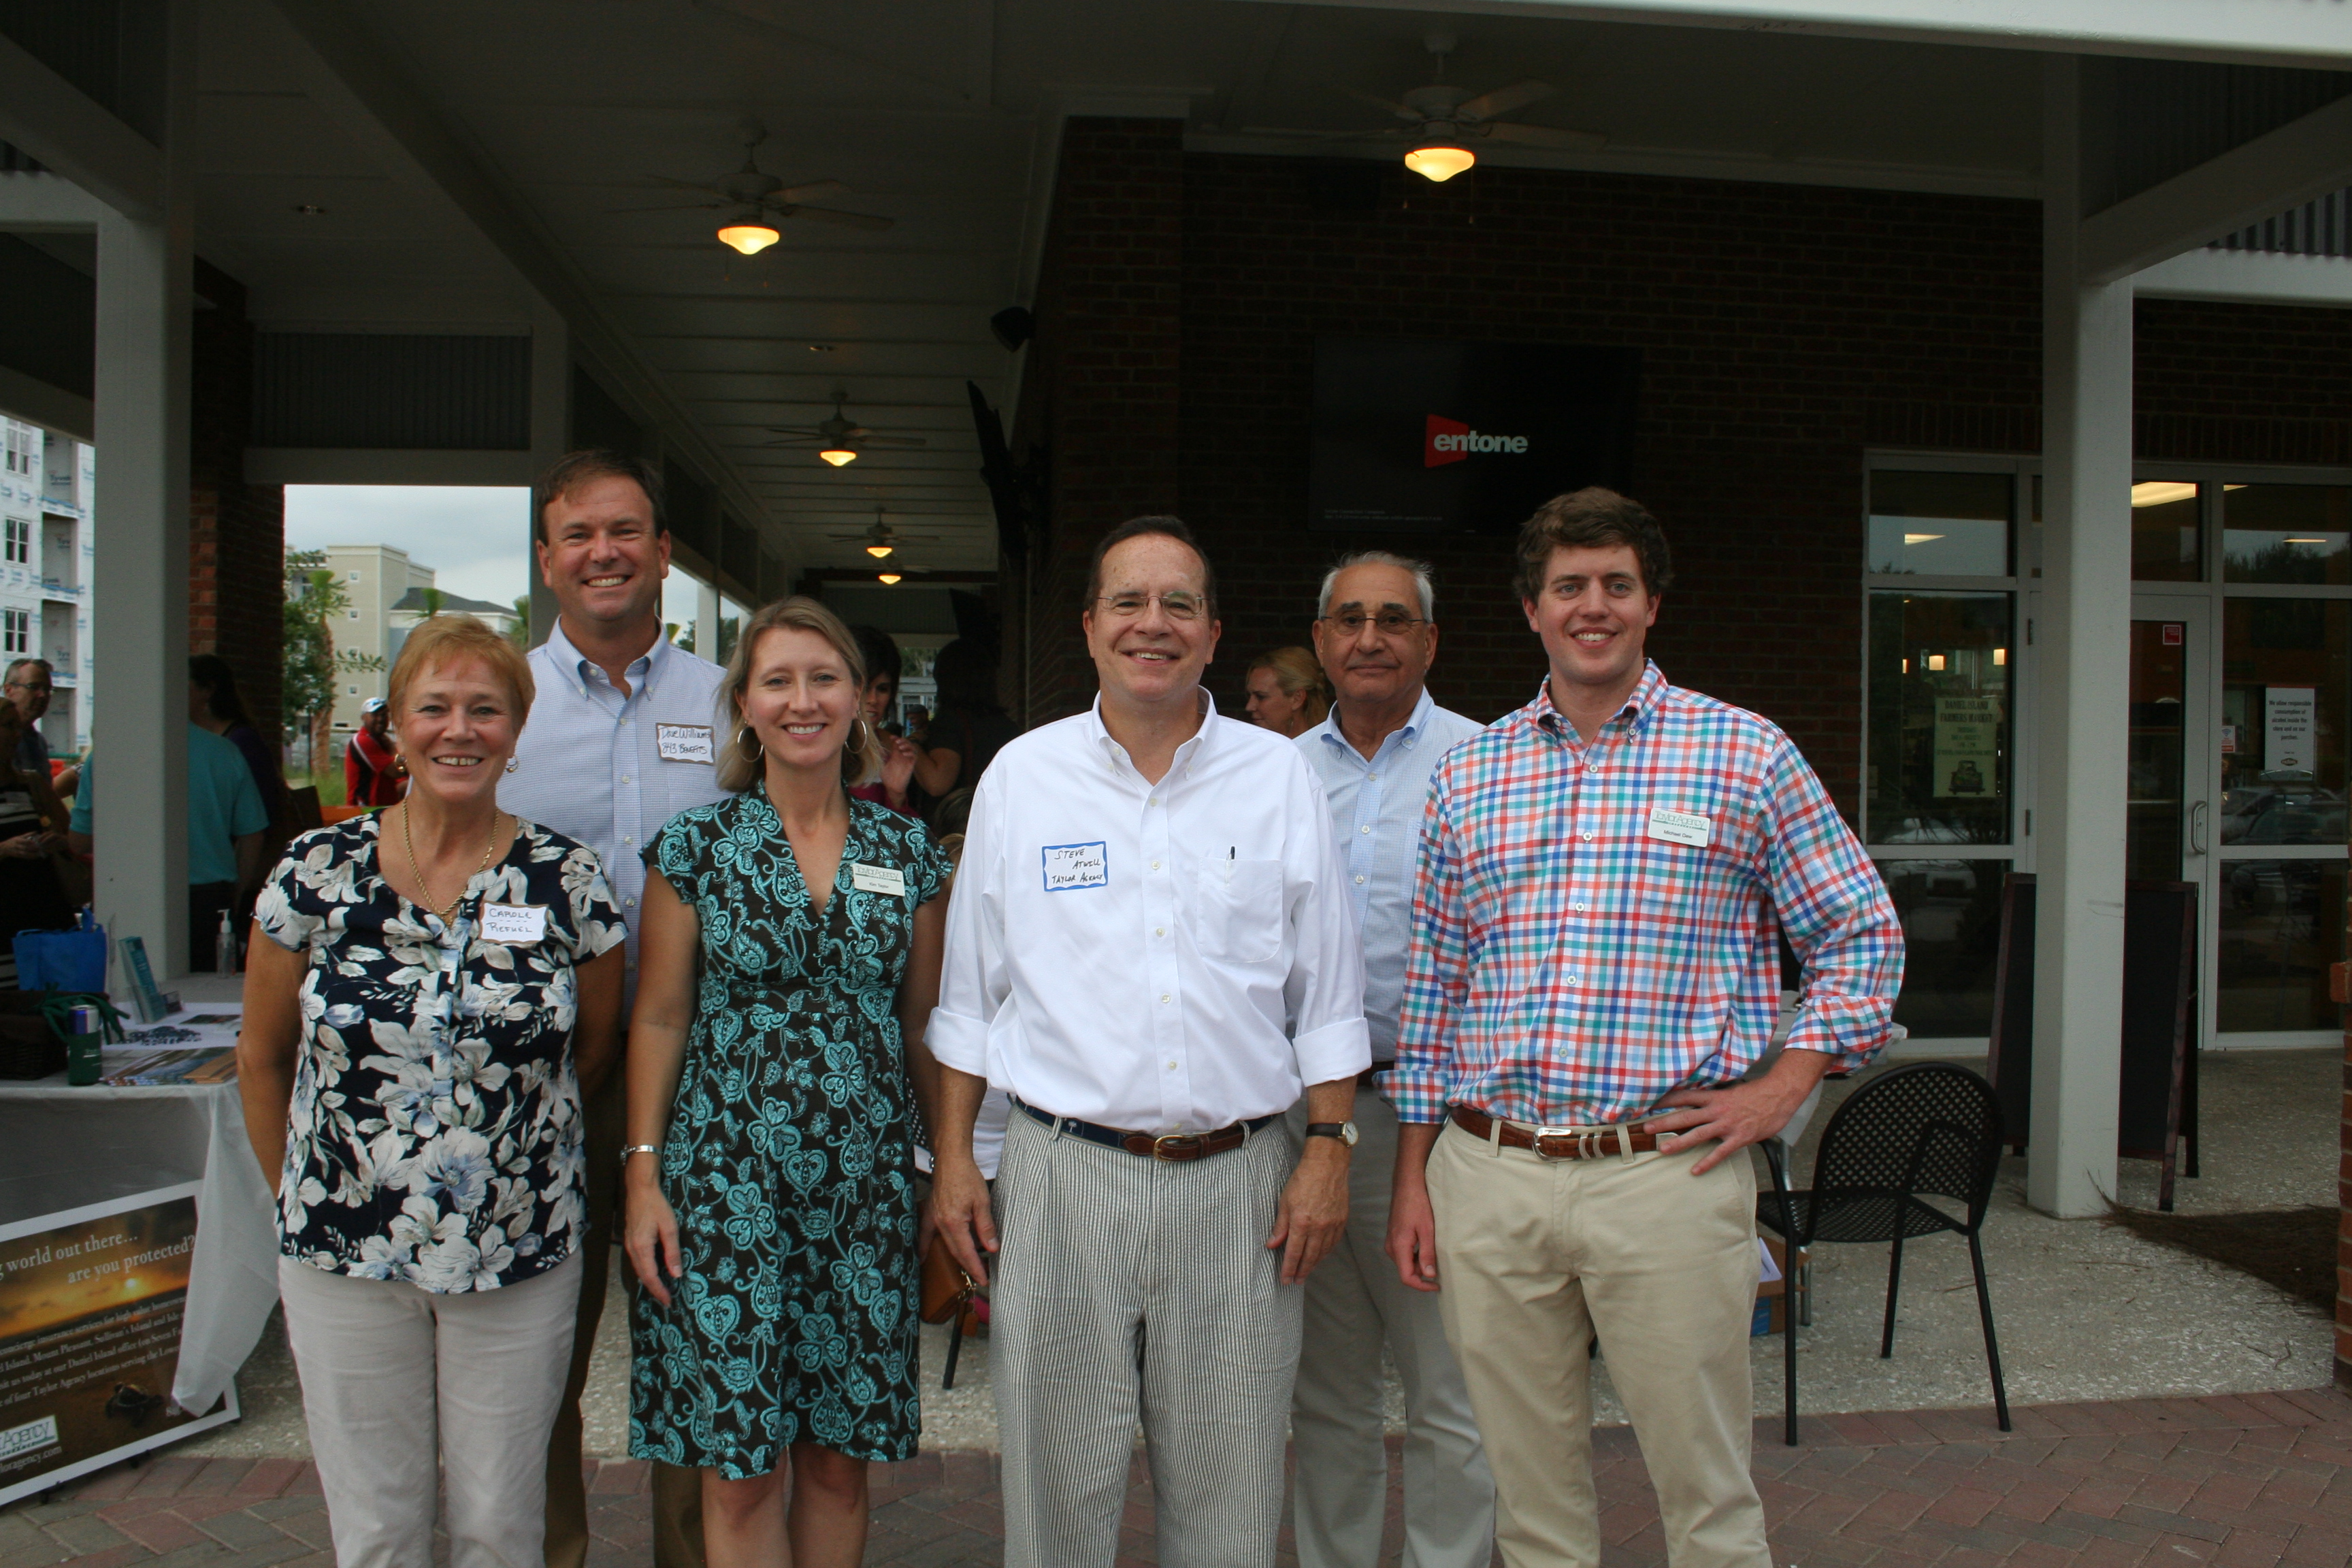 Meet the sponsors and other VIPs: Carole from Refuel, sponsor Dave Williams of 843 Benefits, Kim Taylor and Steve Atwill of the Taylor Agency, Chuck Lattif – DIBA president and owner of Coastal Premier Homes, and Michael Dew of the Taylor Agency. The event was also sponsored by Veterinary Specialty Care.